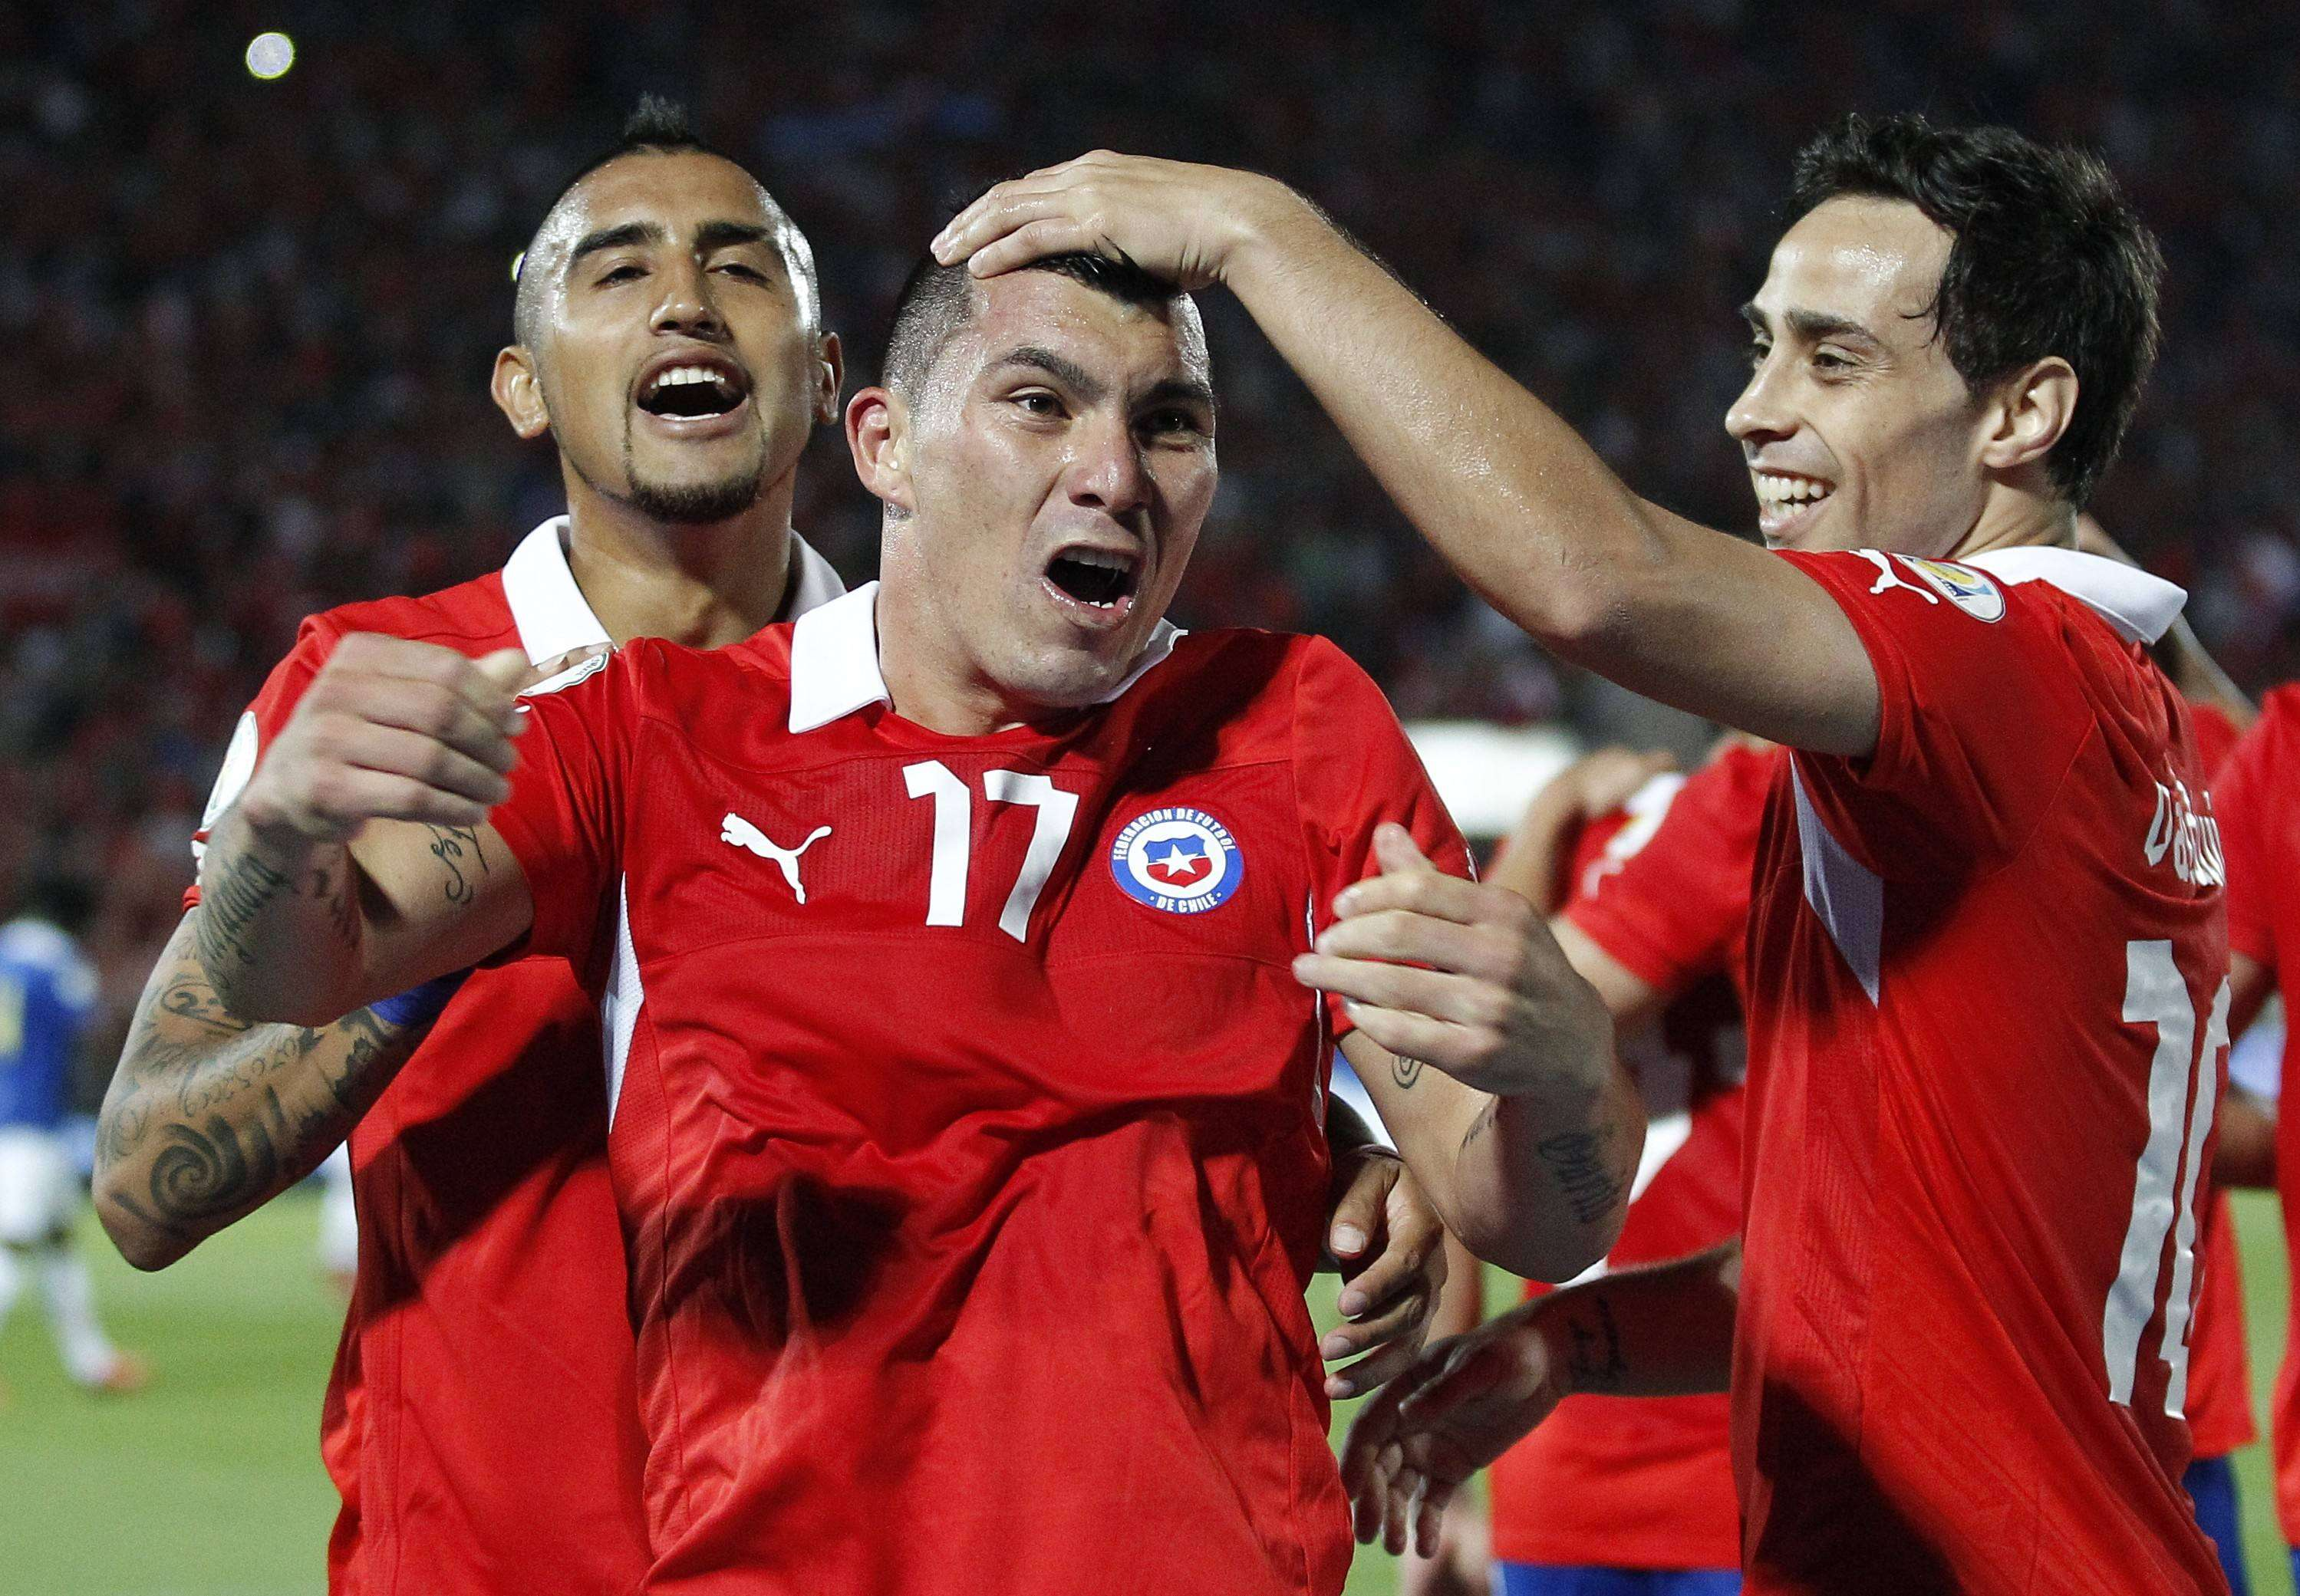 Chile vence Equador em Santiago; ambos se classificam à ...